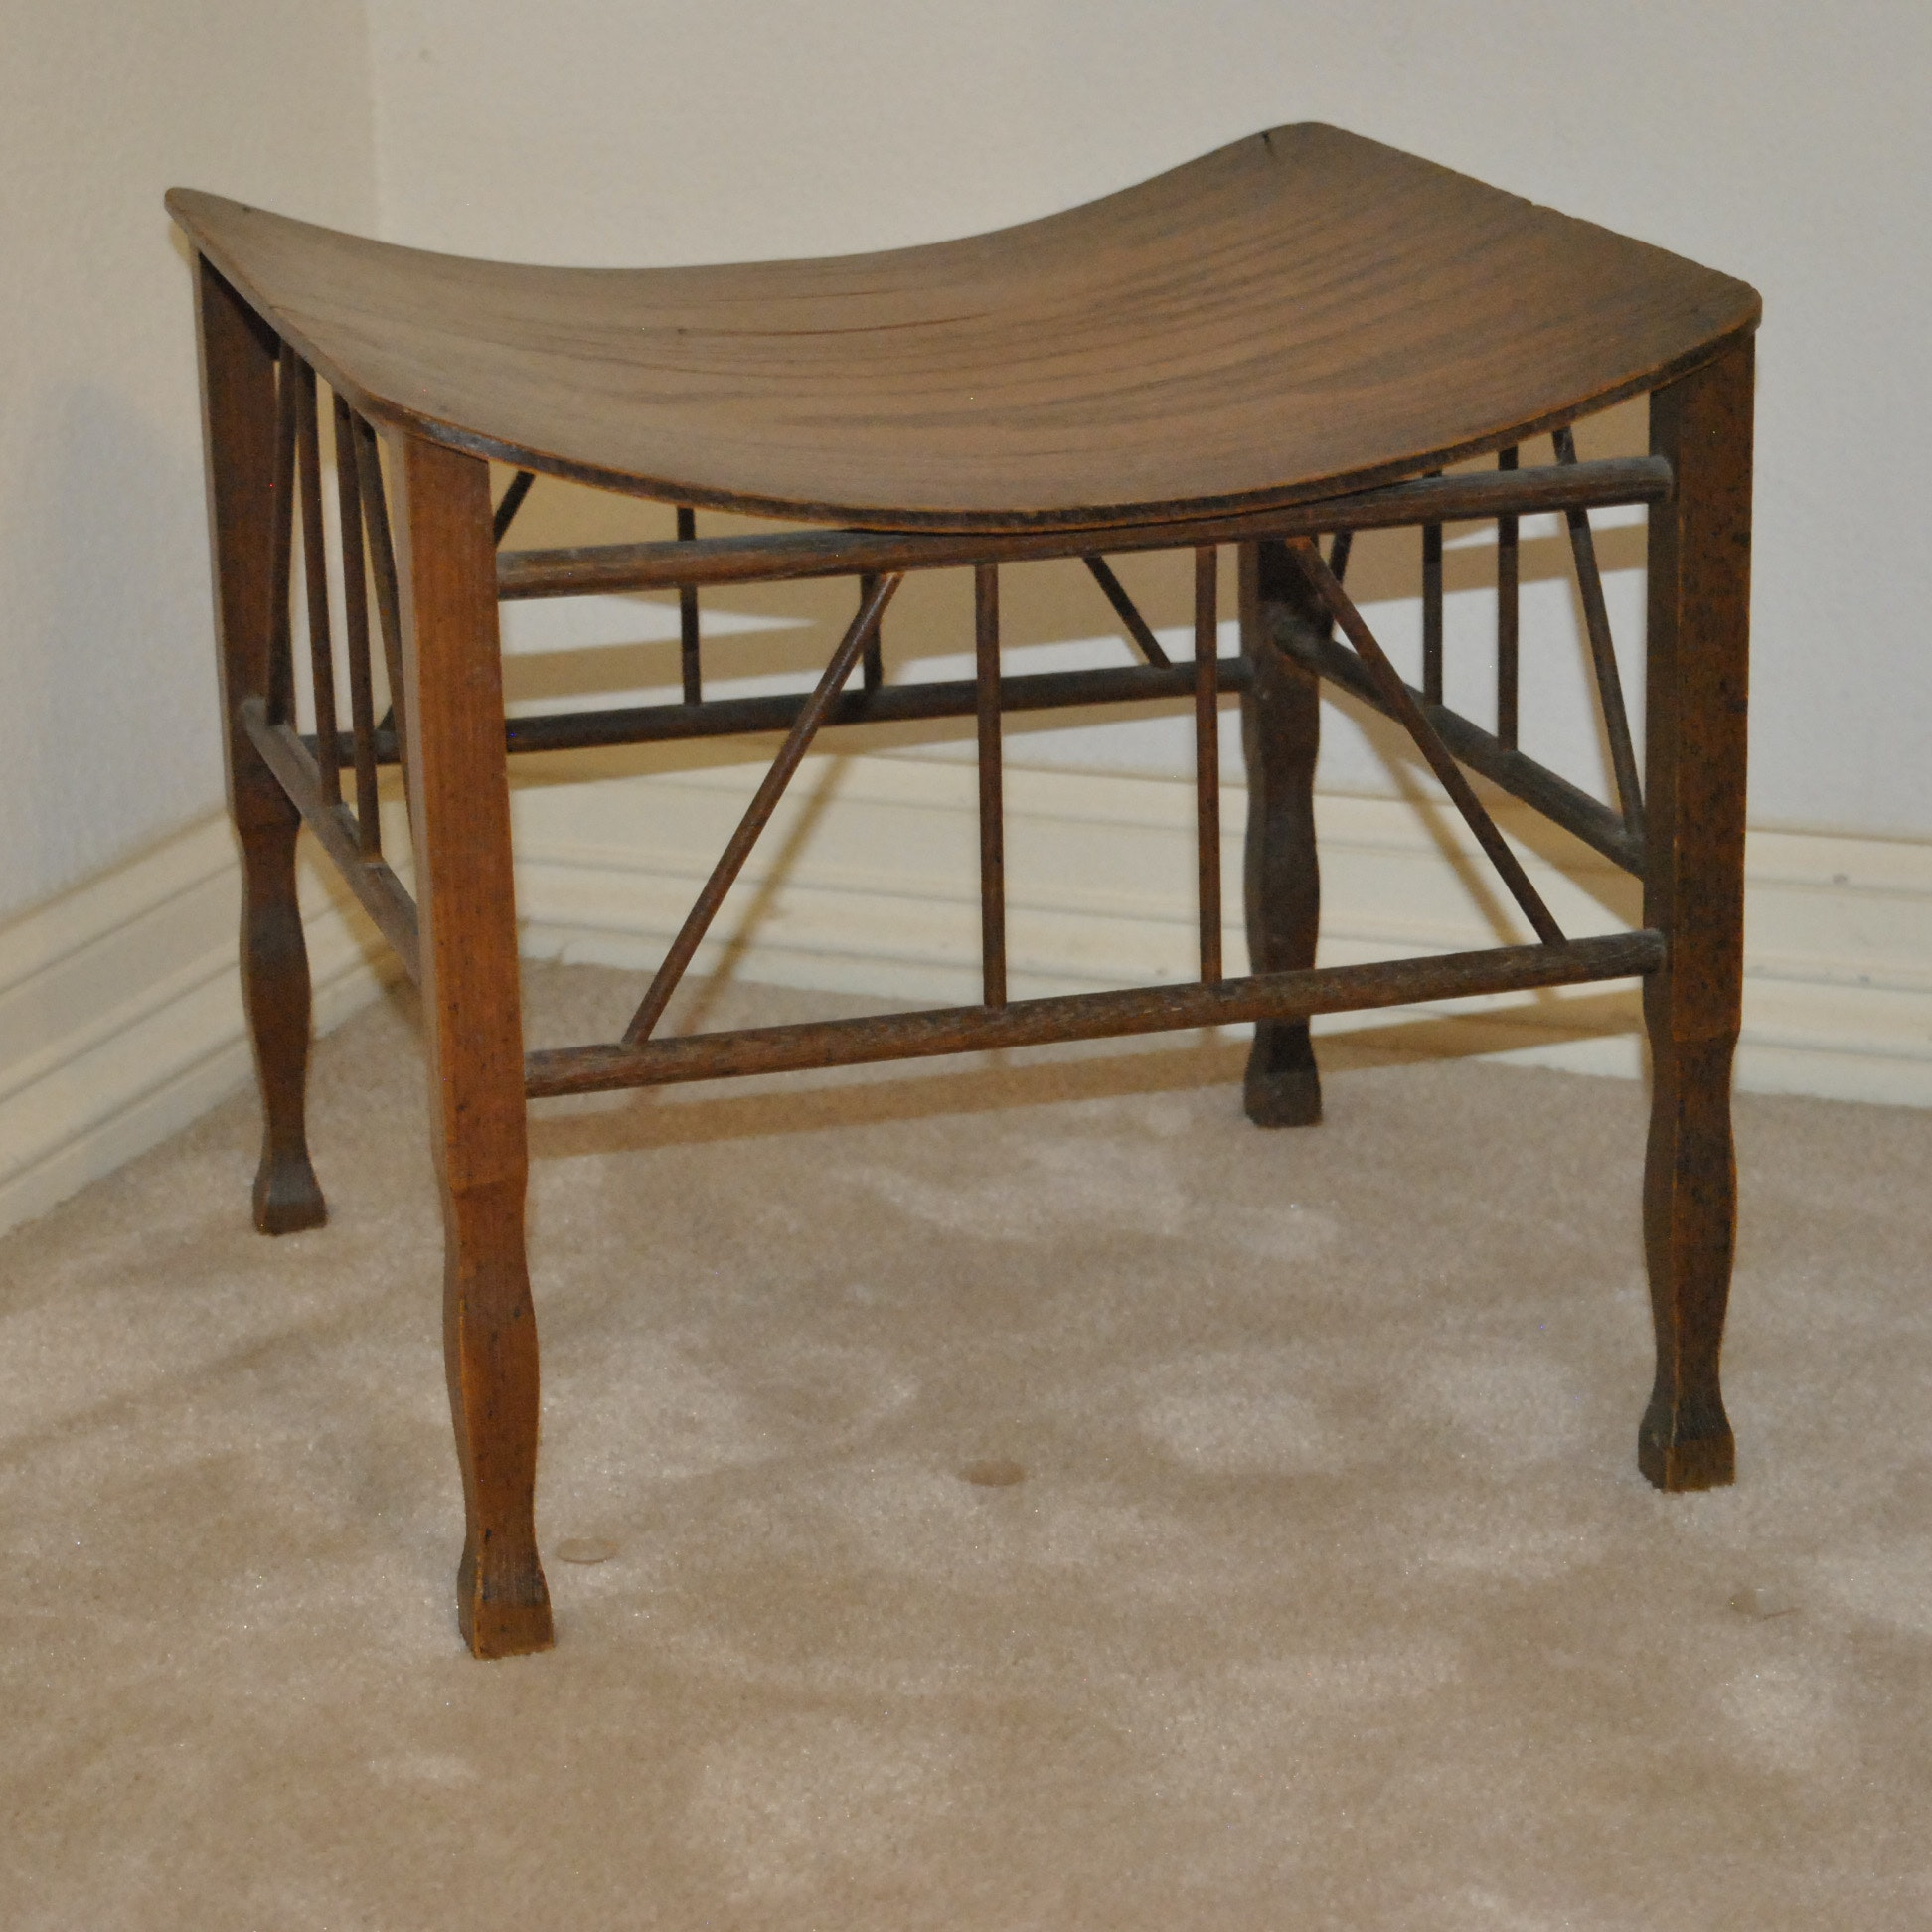 Vintage Thebes Style Stool